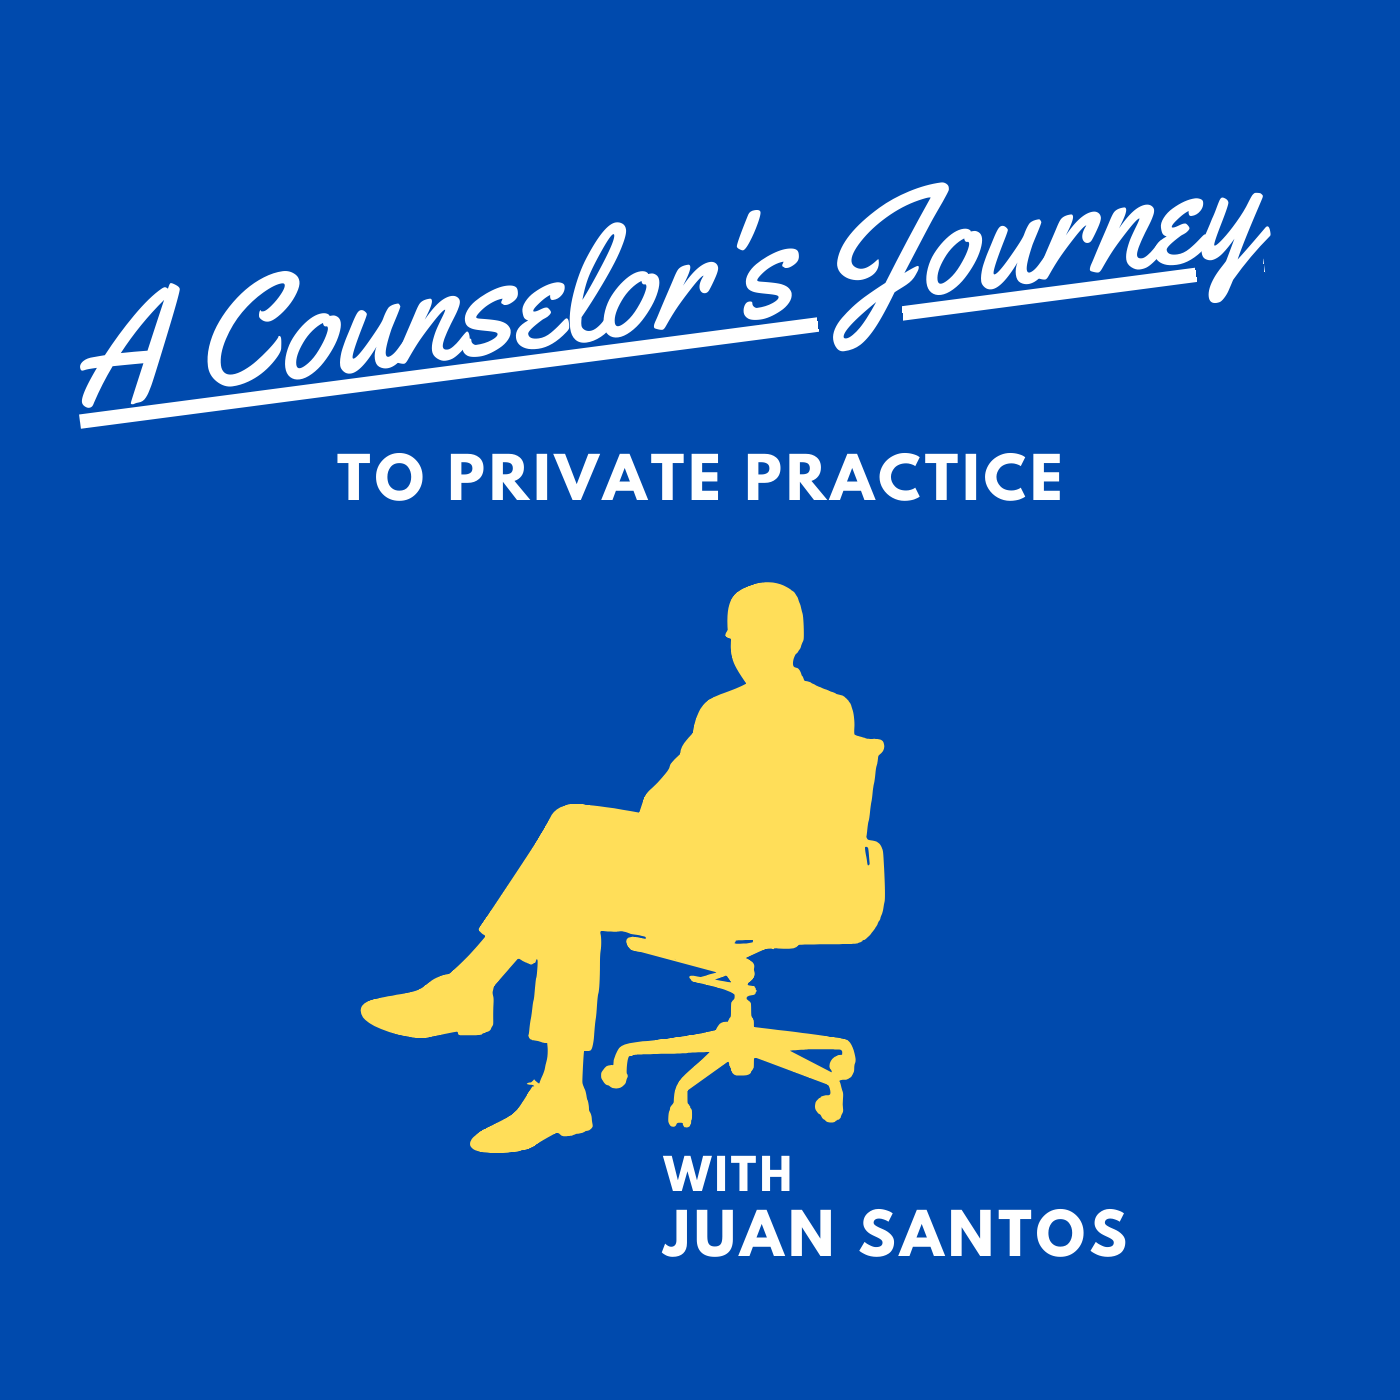 Counseling Private Practice, Private Practice Tools For Counselors, Counseling Business, Counseling Marketing Tips, Marketing A Counseling Practice, Therapist Marketing Strategies, How To Market Yourself As A Therapist, Marketing Strategies For Counselors, Marketing Strategies For Therapist